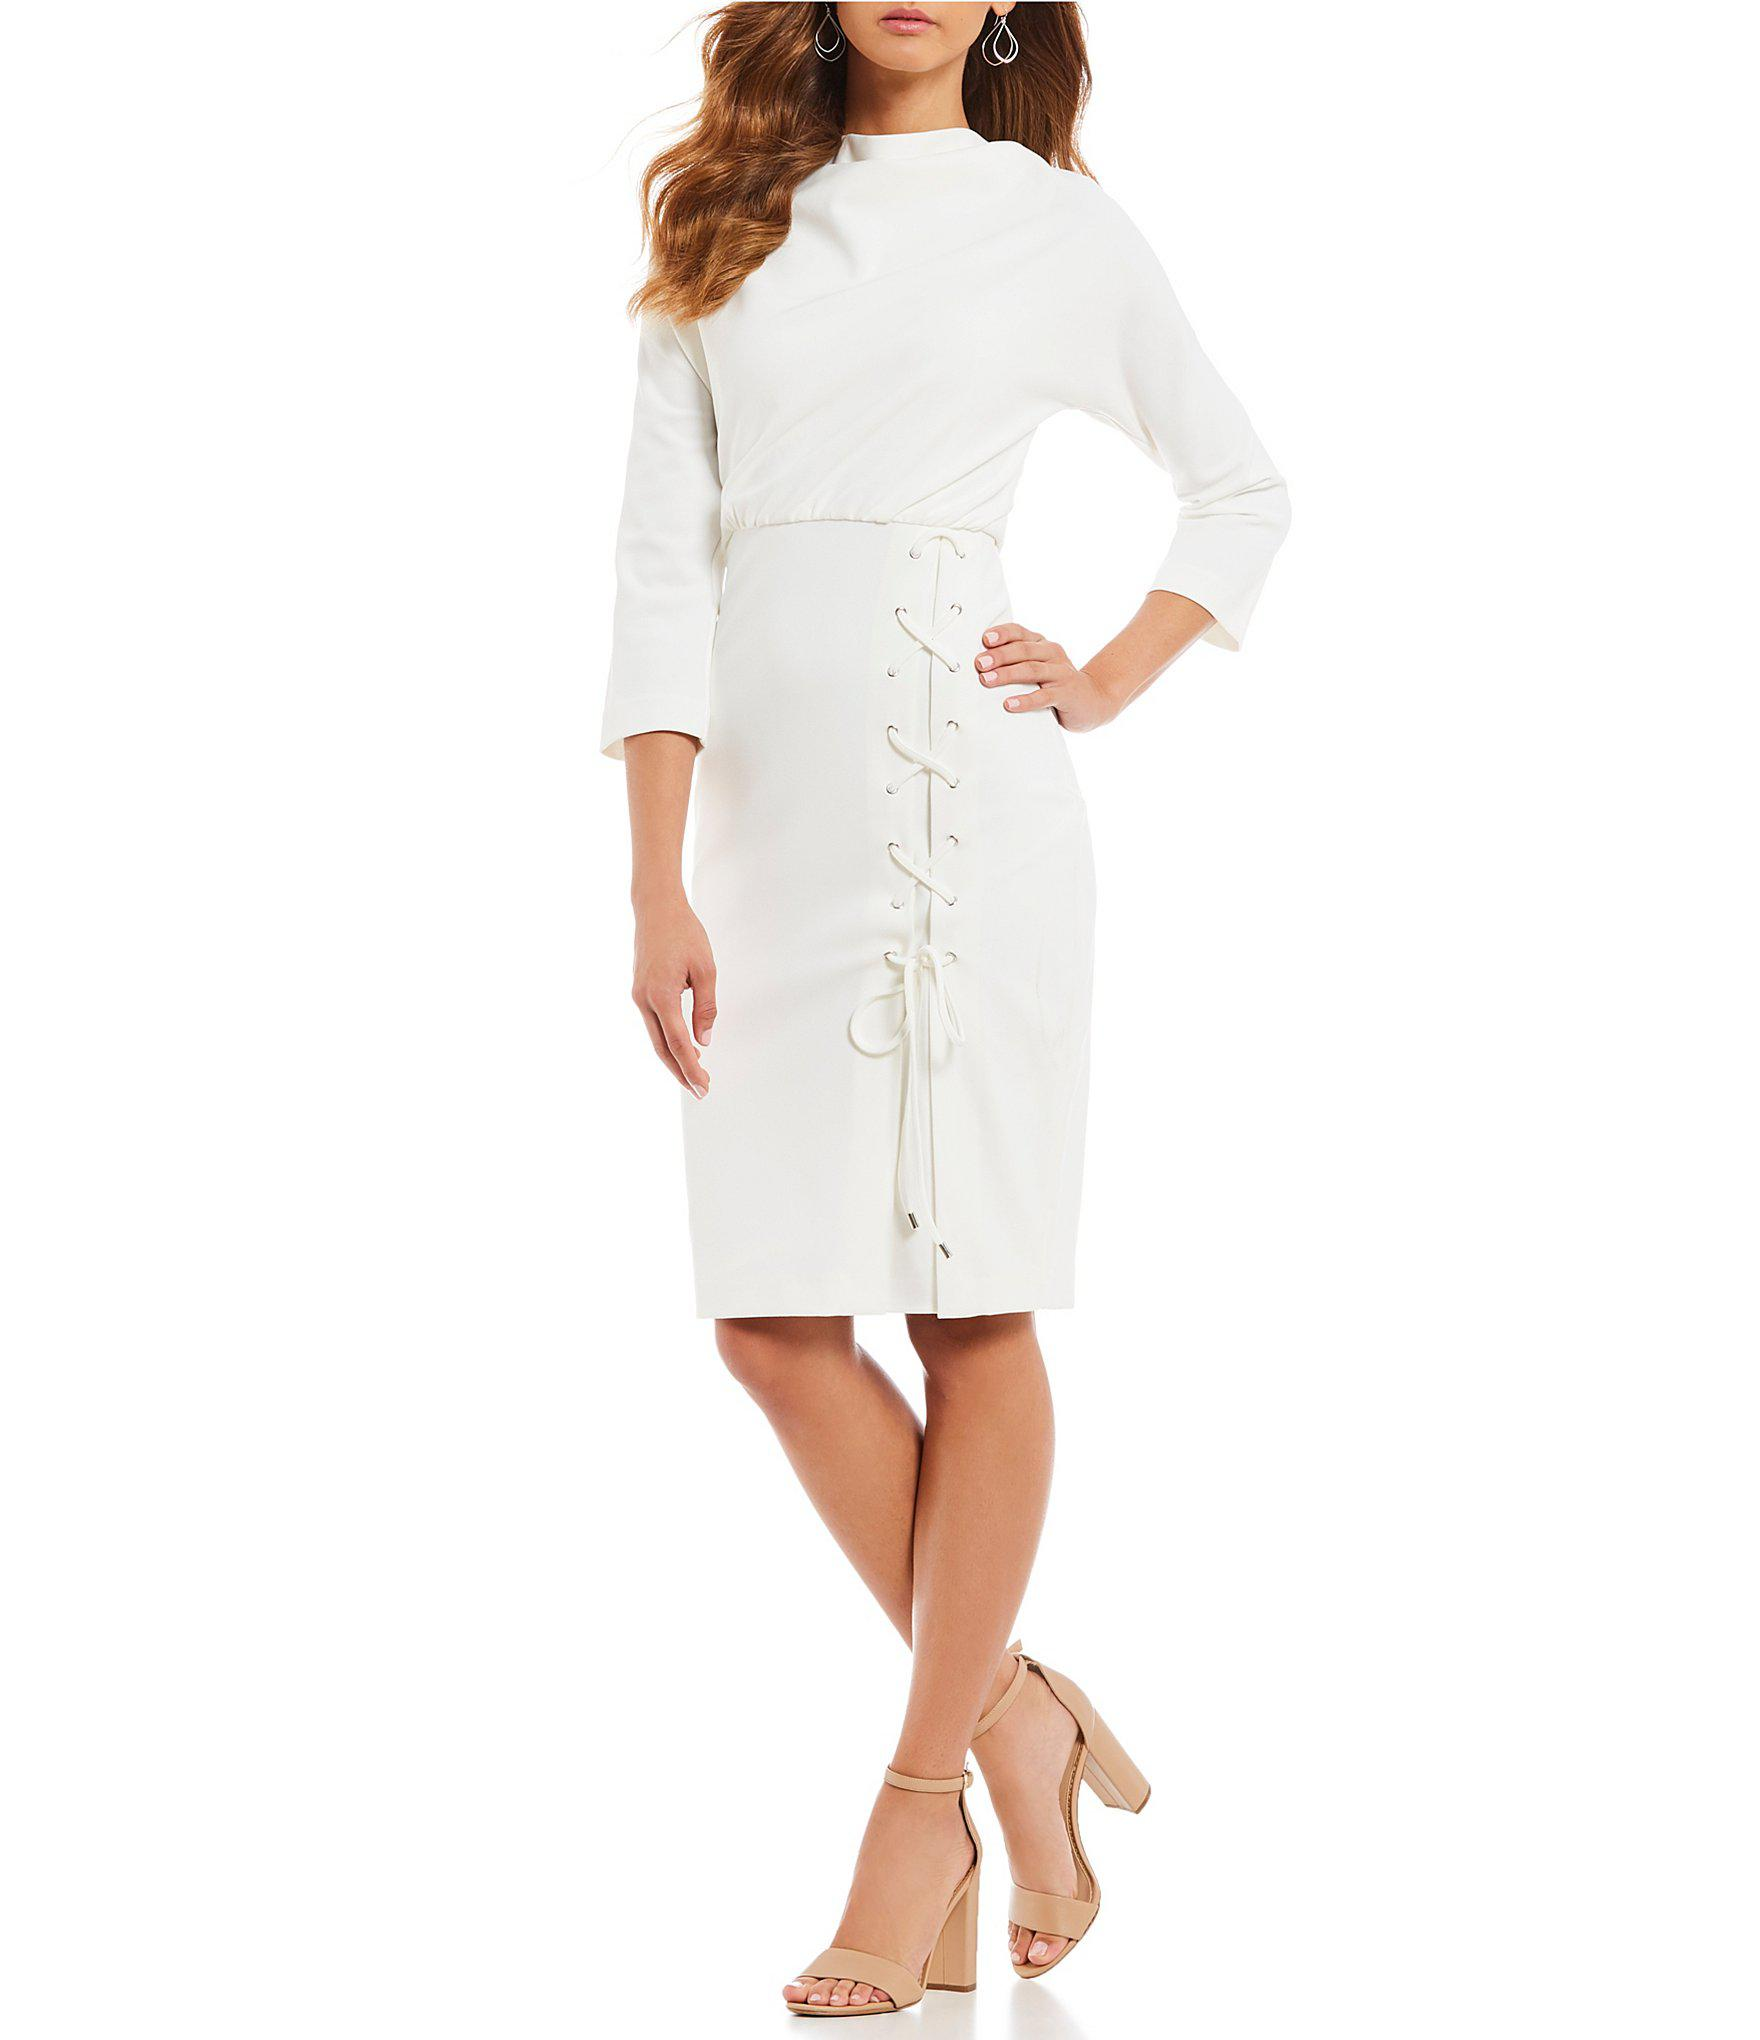 6d27cd4aa8d Lyst - Belle By Badgley Mischka Lace-up Dress in White